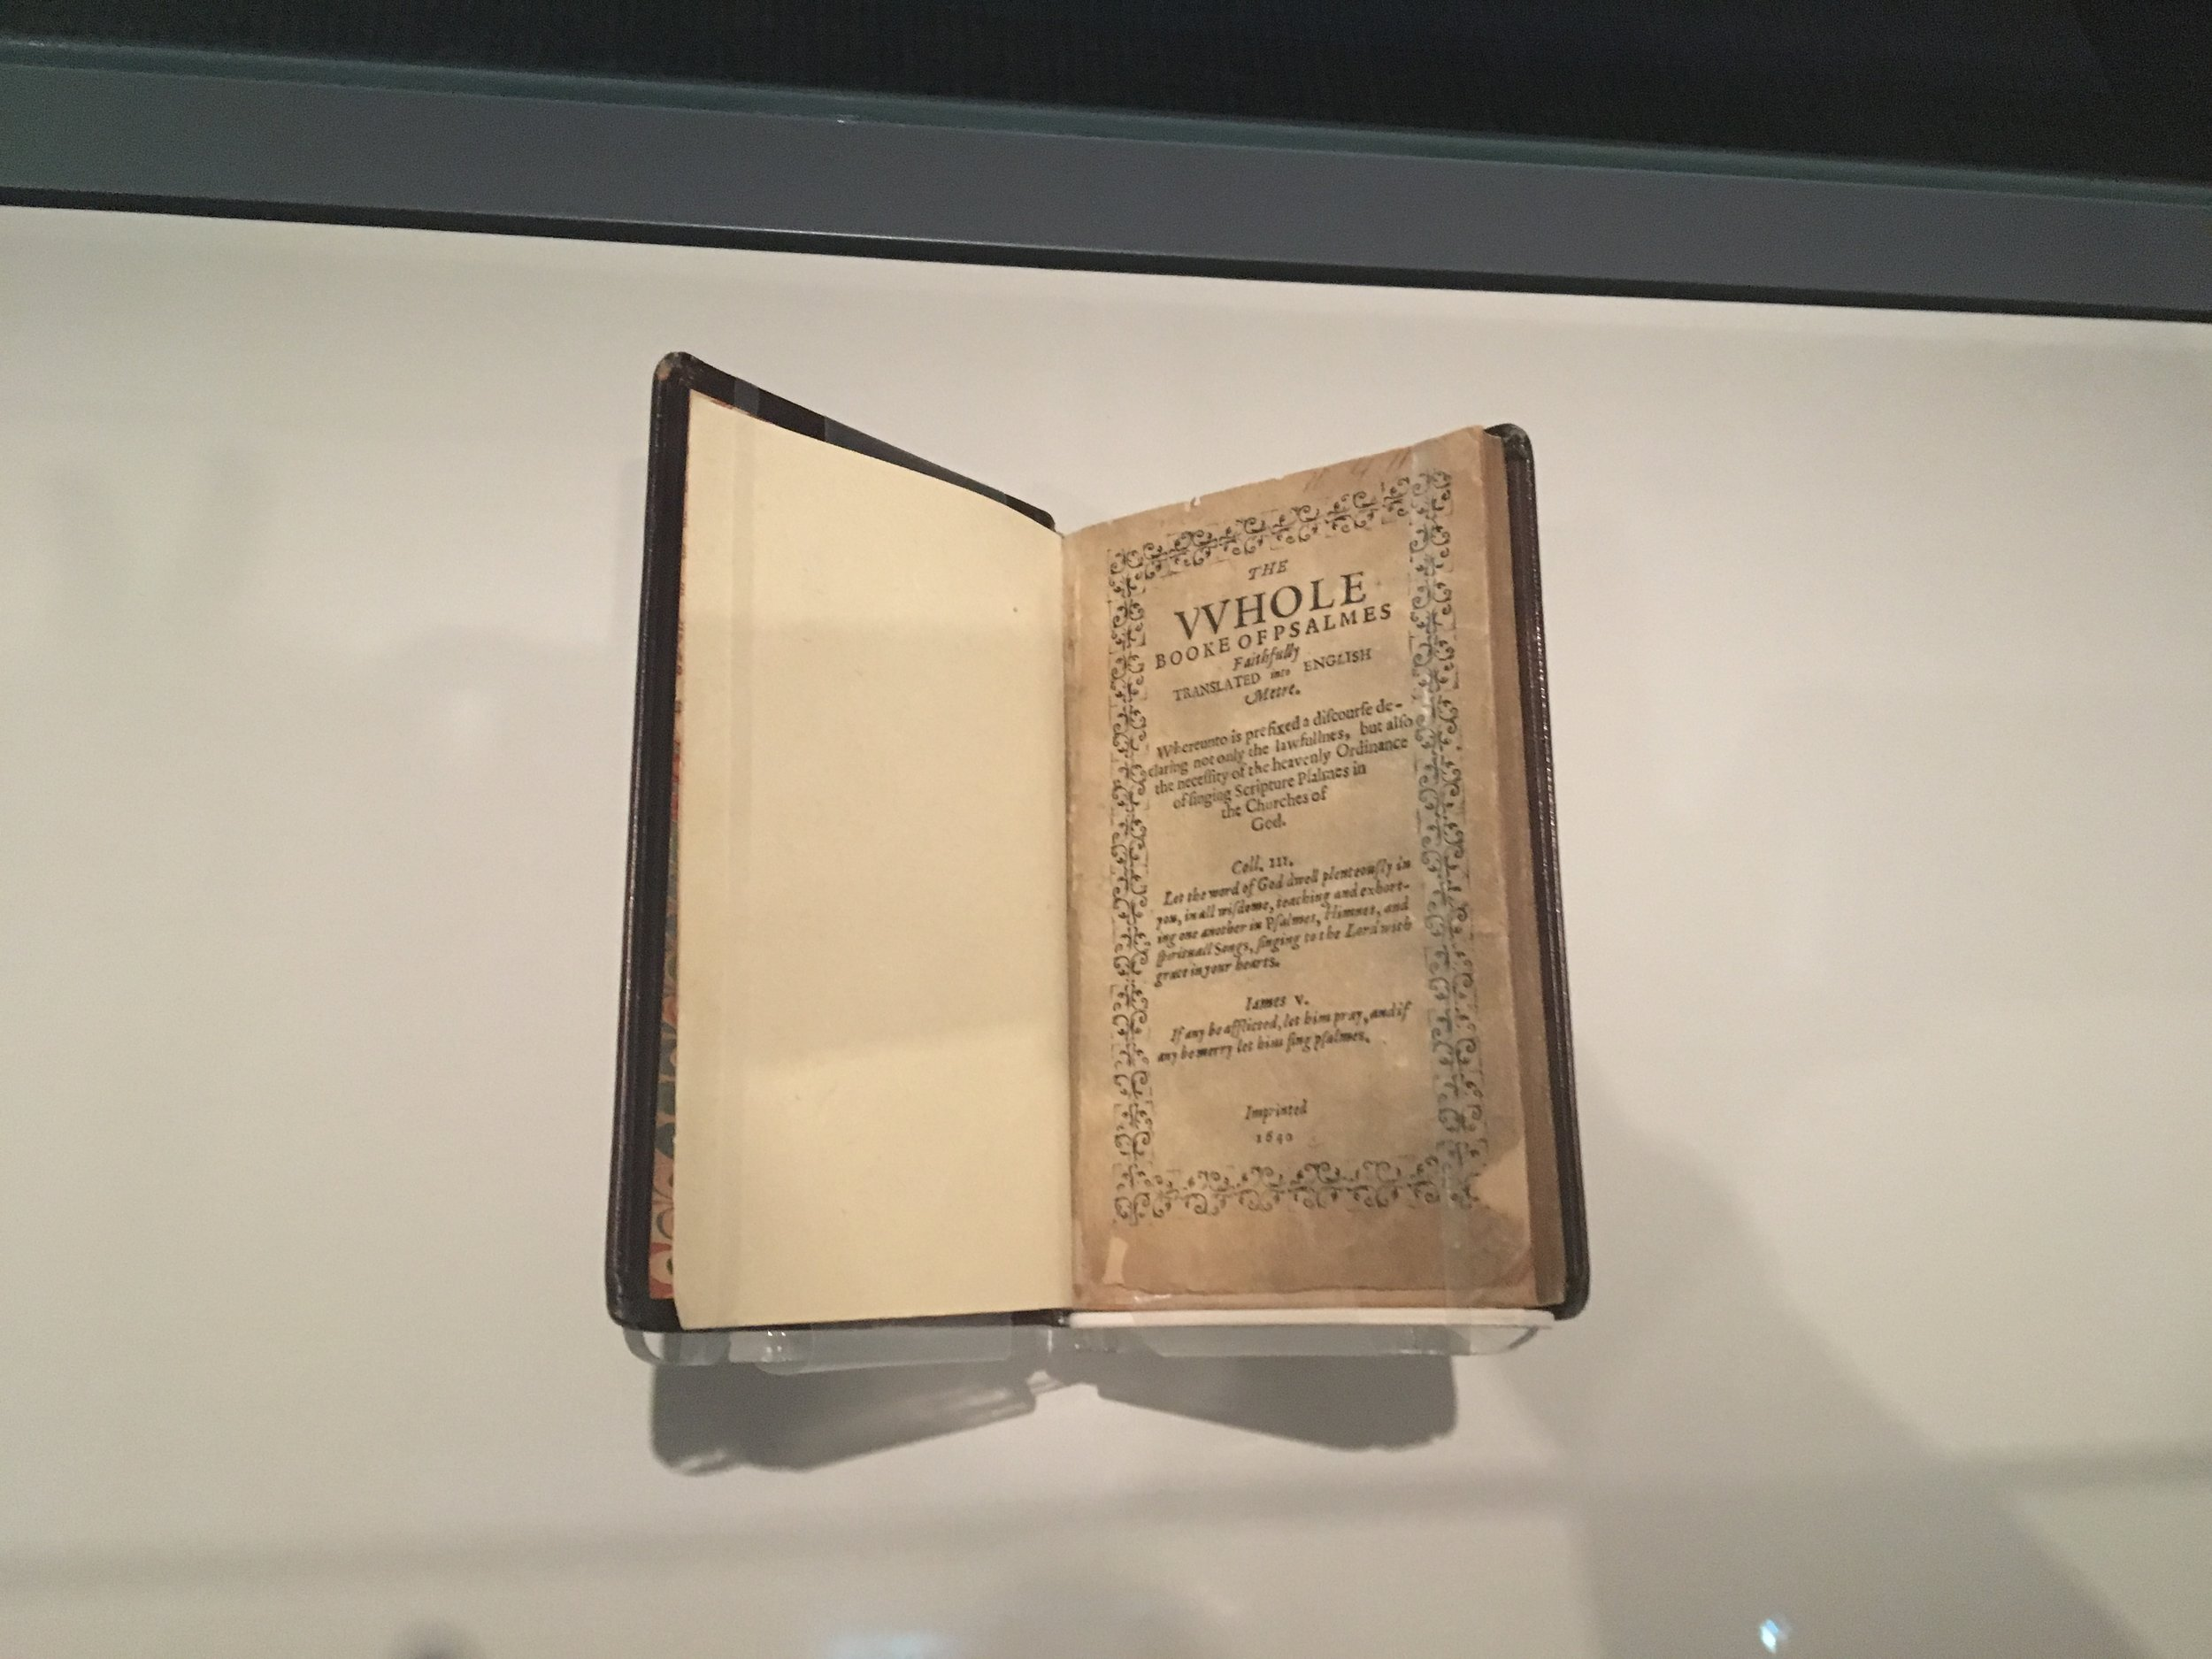 1640 Bay Psalm Book, considered America's first hymnal